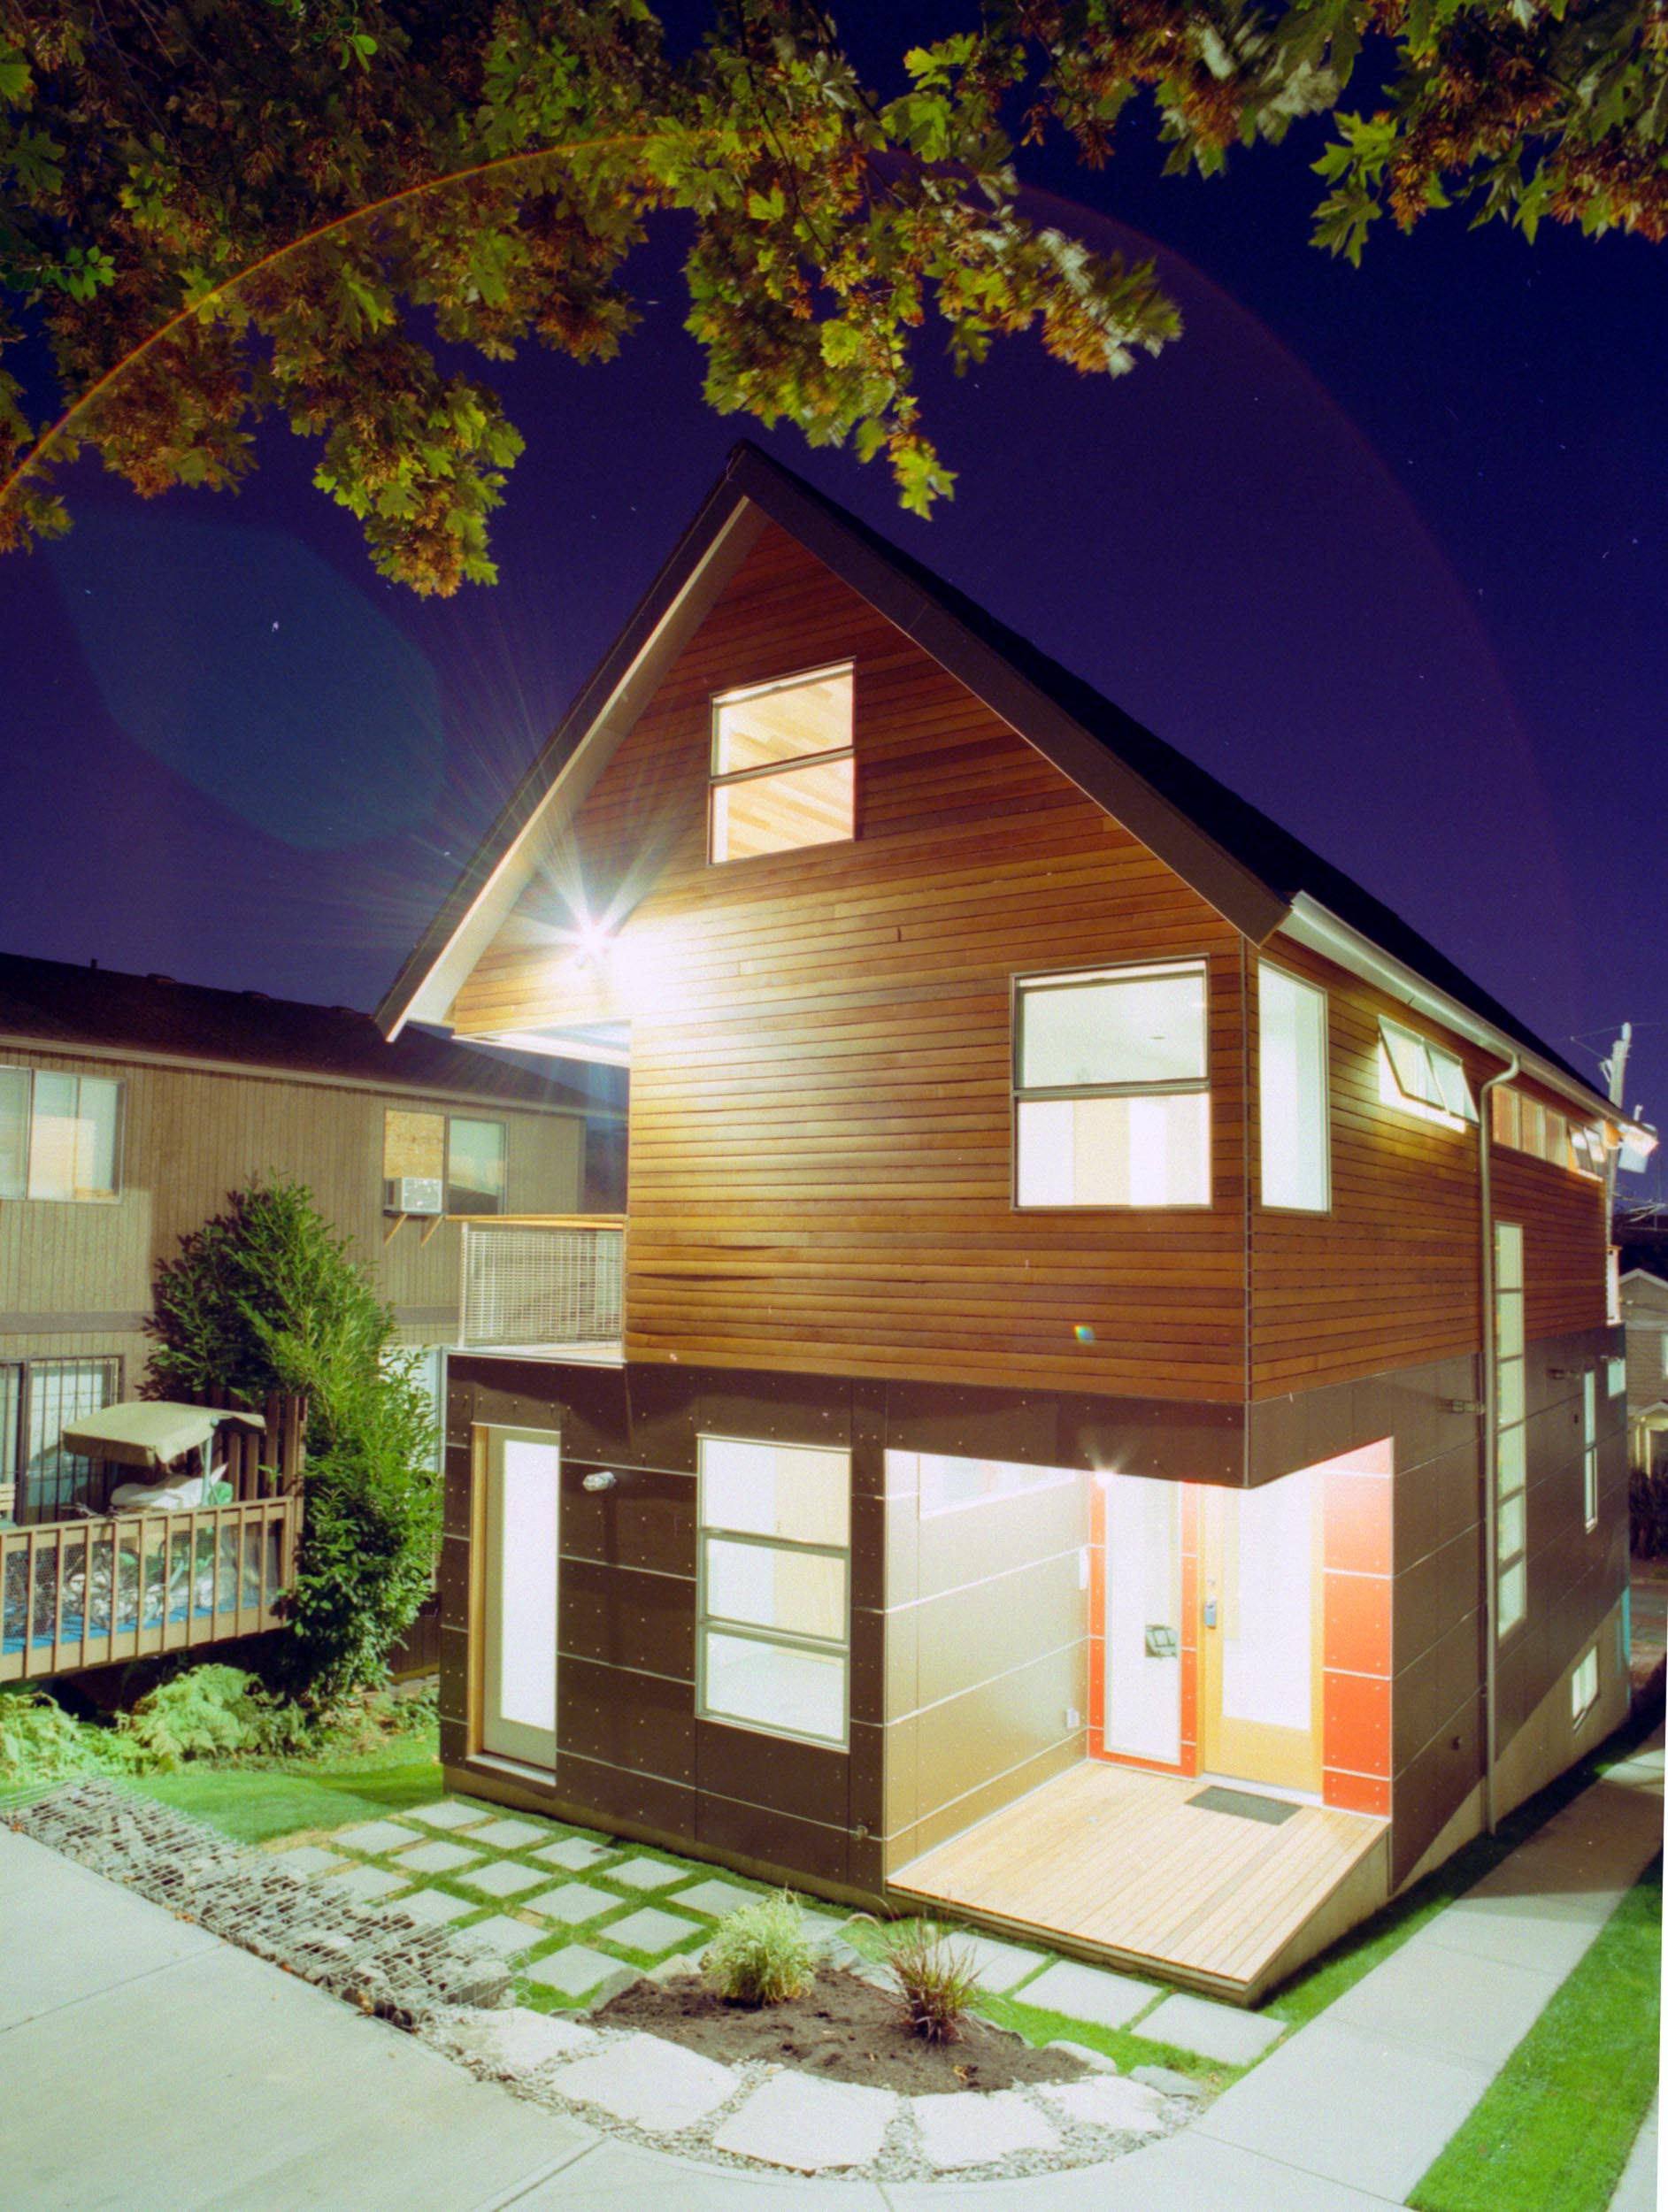 WC-STUDIO-CENTRAL-DISTRICT-HOUSE-EXTERIOR-REAR-ENTRY-NIGHT.jpg